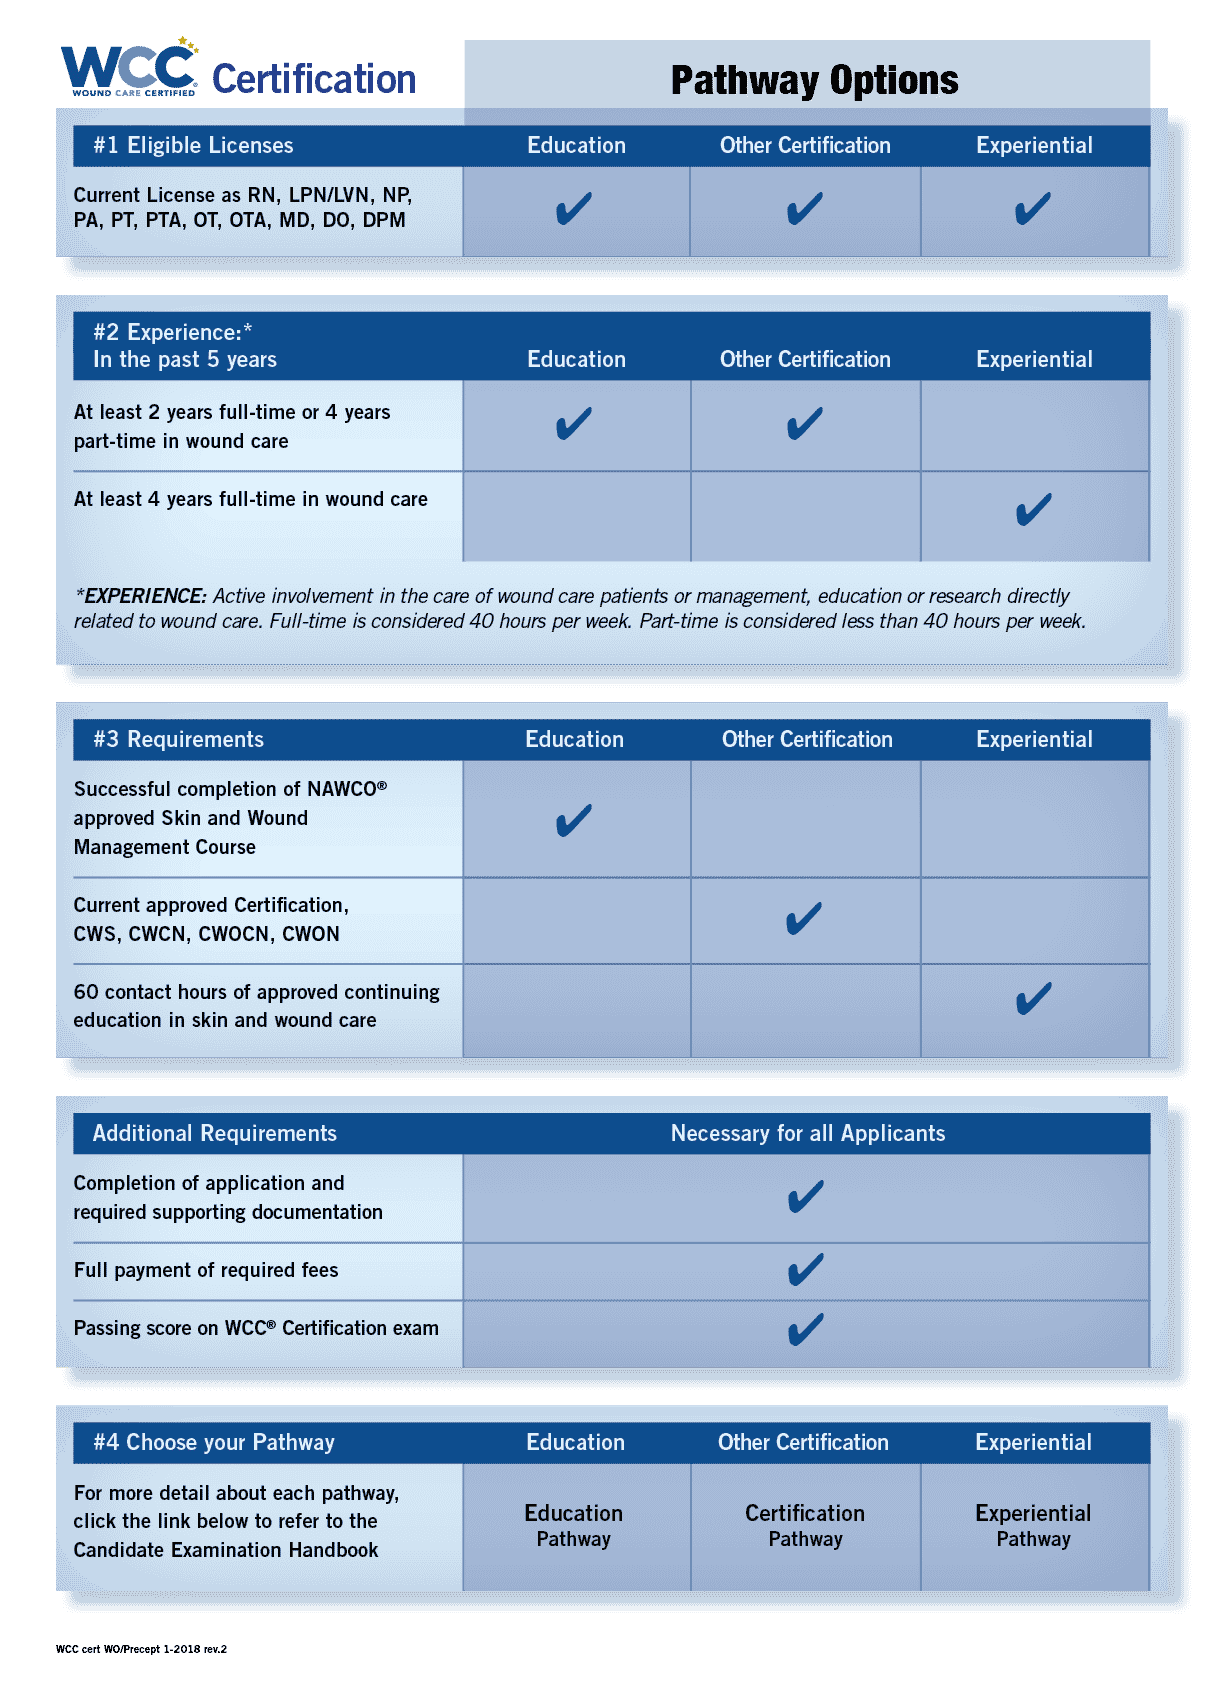 Wound care certification nawco wound care and ostomy the chart below shows the different pathway options required to sit for the wound care certified wcc certification exam review the information to see xflitez Images